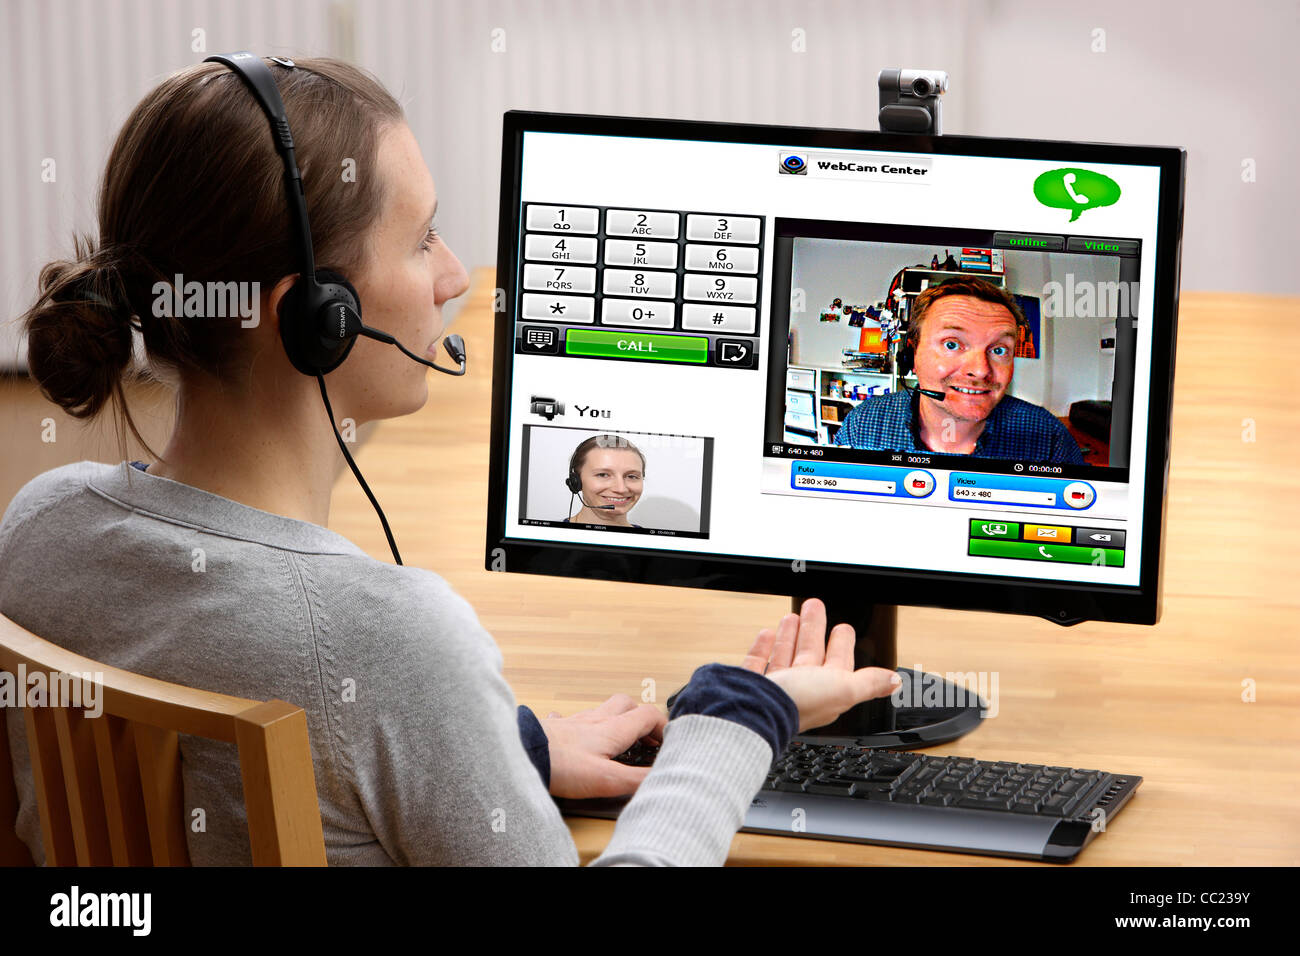 peoples chat rooms